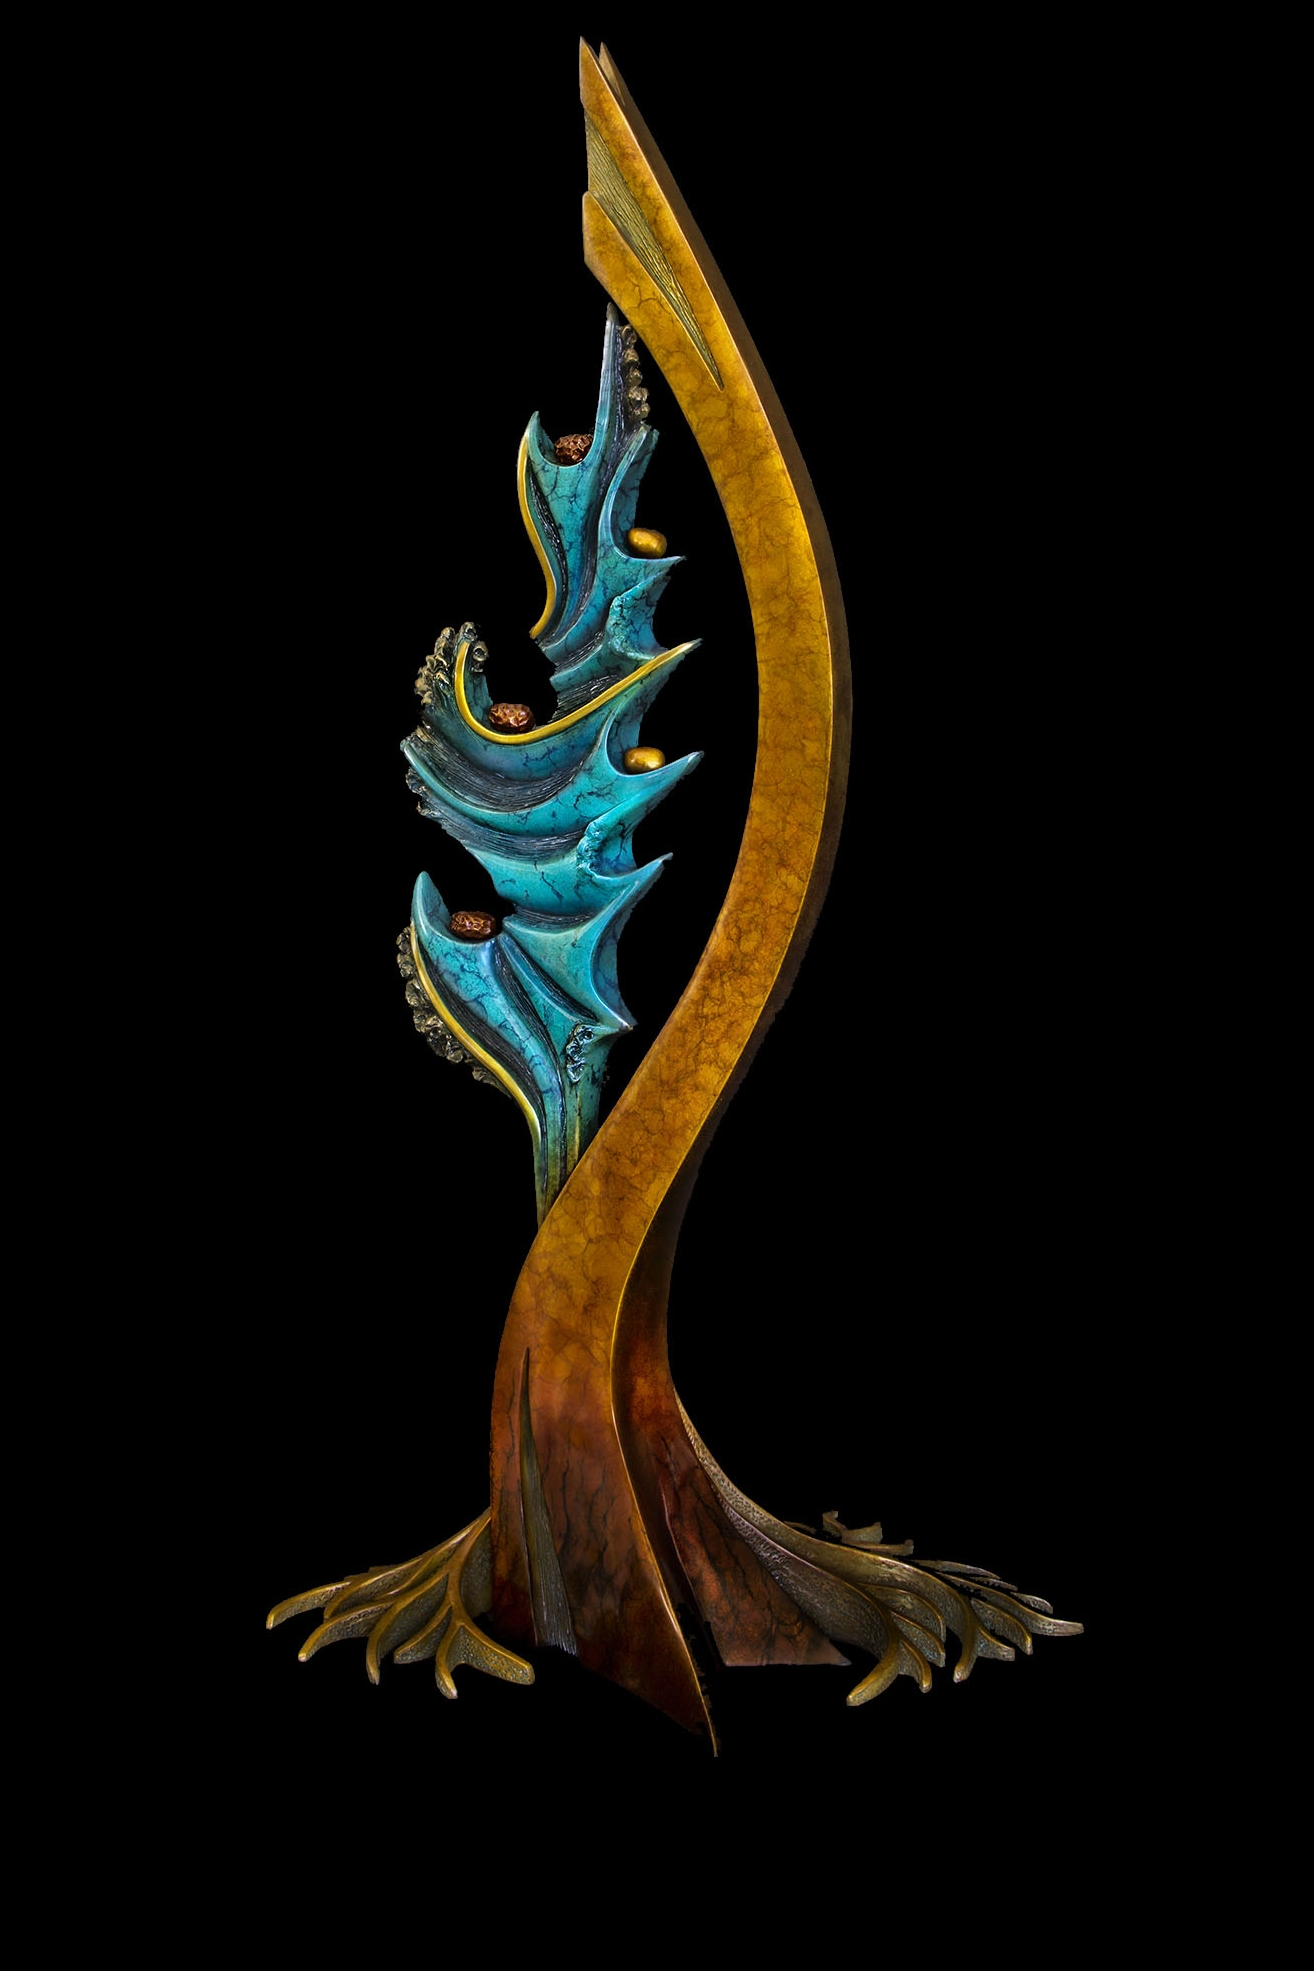 """Roots of Inspiration  ,Bronze,37"""" H x 19"""" W x 15.25"""" D, Edition of 35: In order to thrive in this world and/or allow the creative process to blossom forth in all its glory,a stable, grounded,yet flexibleelement in ourlives needs to take root. Fromthese grounded roots, newness,joy,creativity, daring, and eventually the seeds of further growthand explorationspring forthlike an arrow from a bow. The Tree of Life here also serves as asymbol for the earth with the ever-changing, ever-creating ocean feeding off of it."""